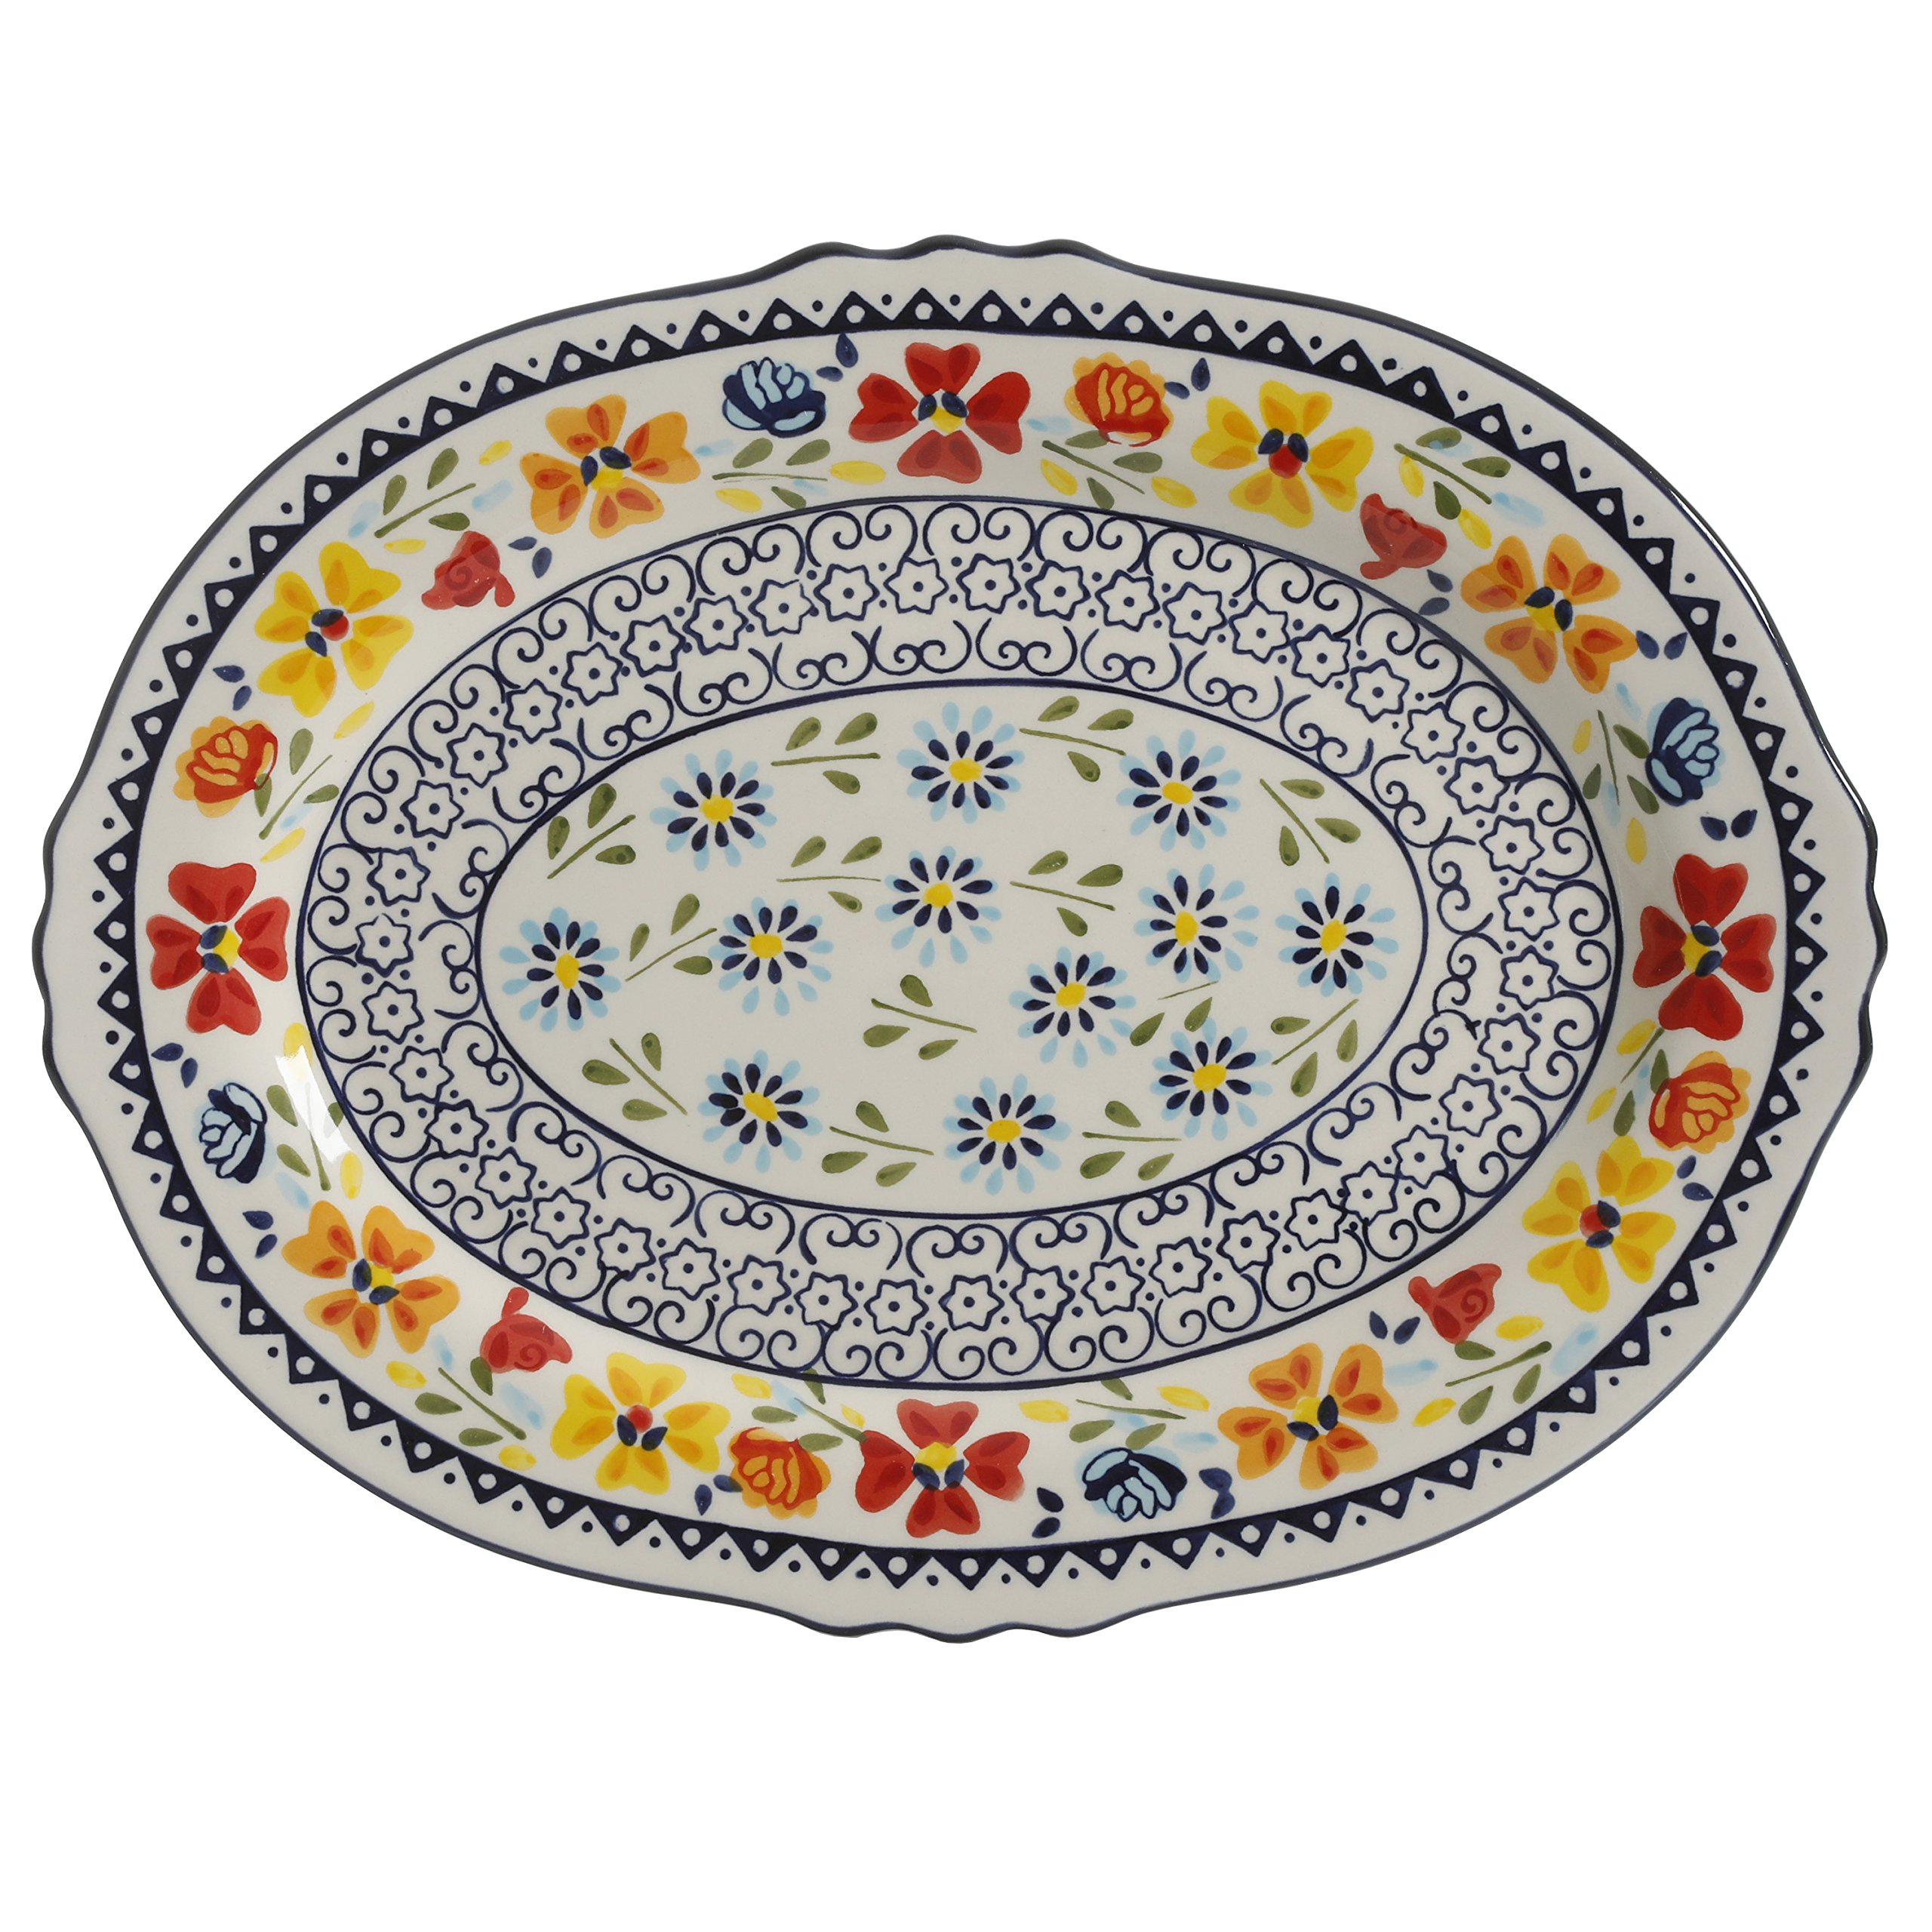 Gibson Elite 98760.01R Luxembourg Handpainted 14'' Serving Platter, Blue and Cream w/Floral Designs